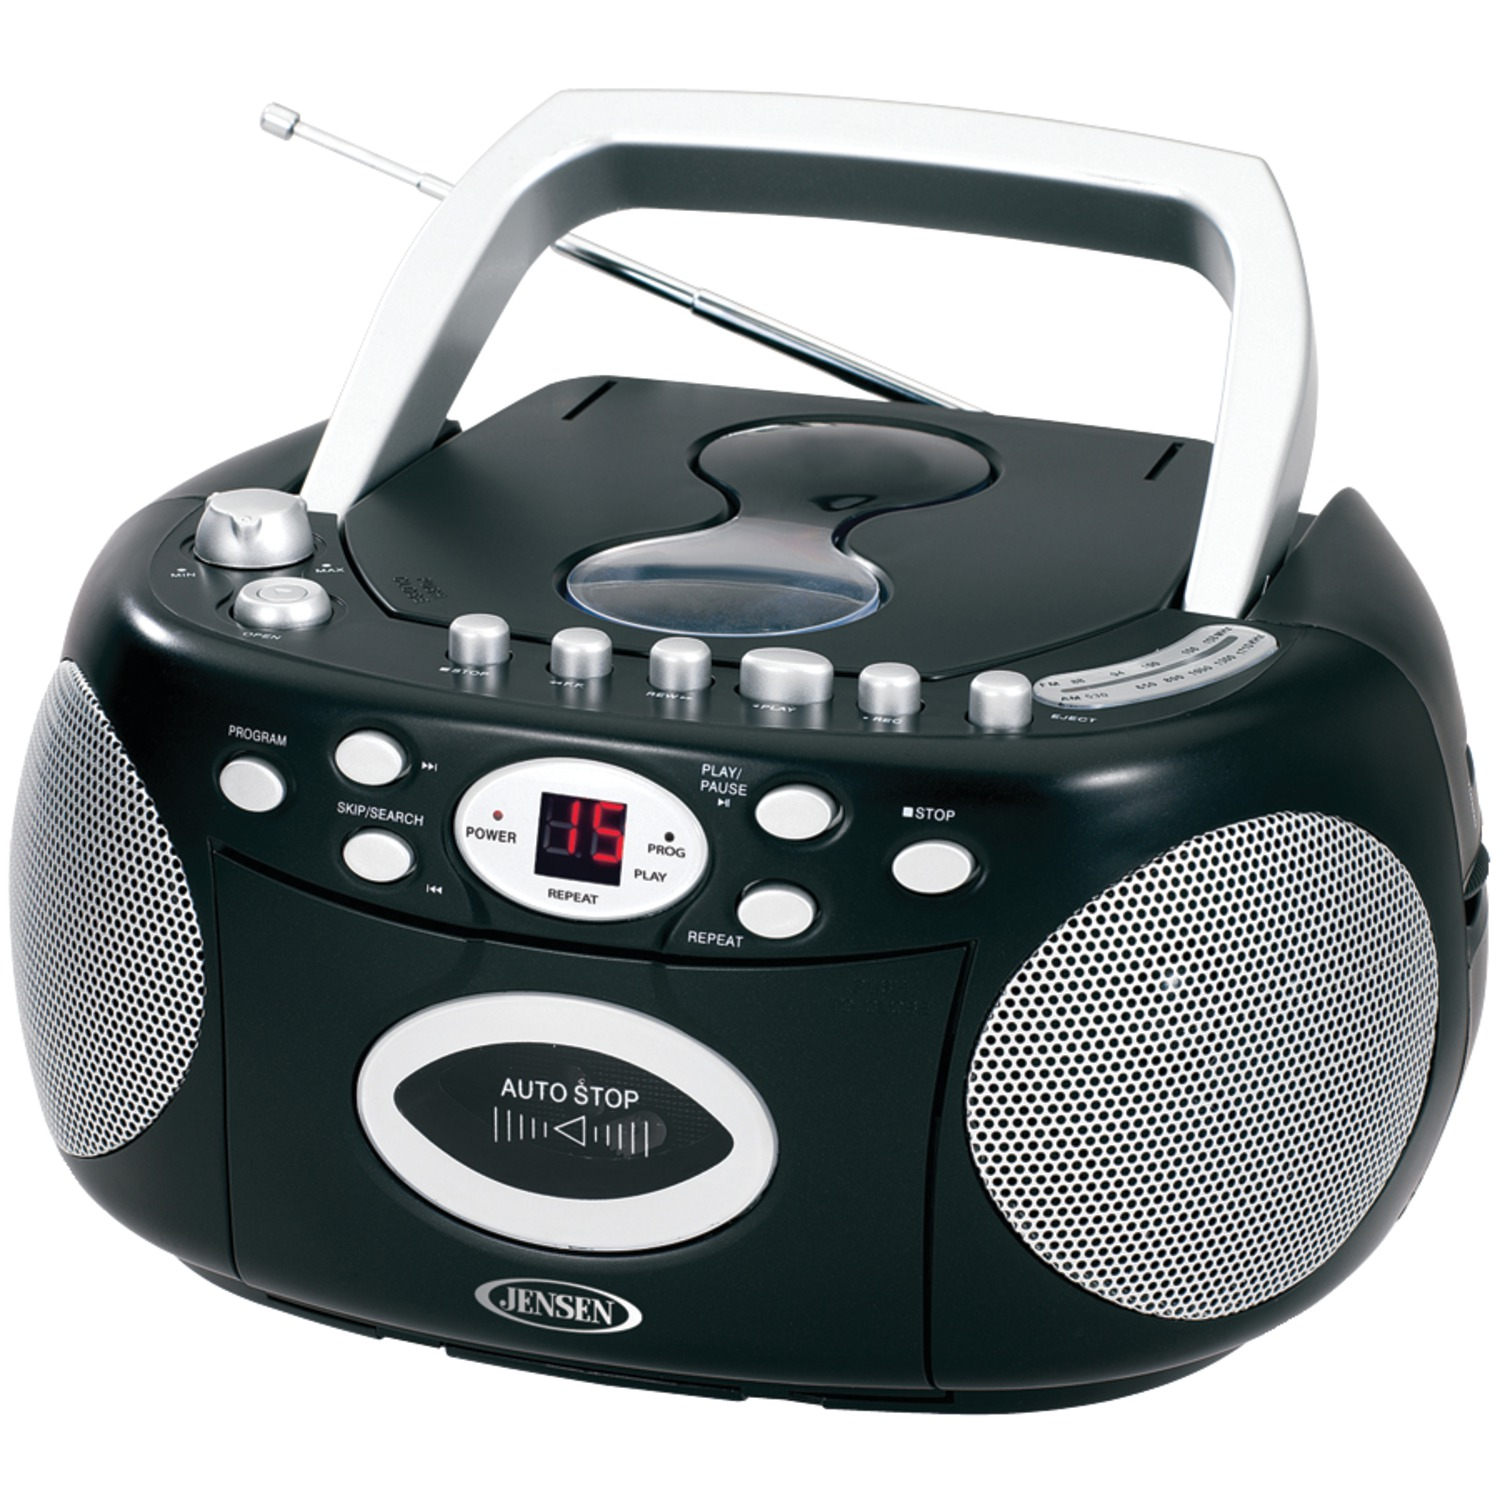 jensen cd 540 r refurbished portable stereo cd player with cassette am fm radio. Black Bedroom Furniture Sets. Home Design Ideas